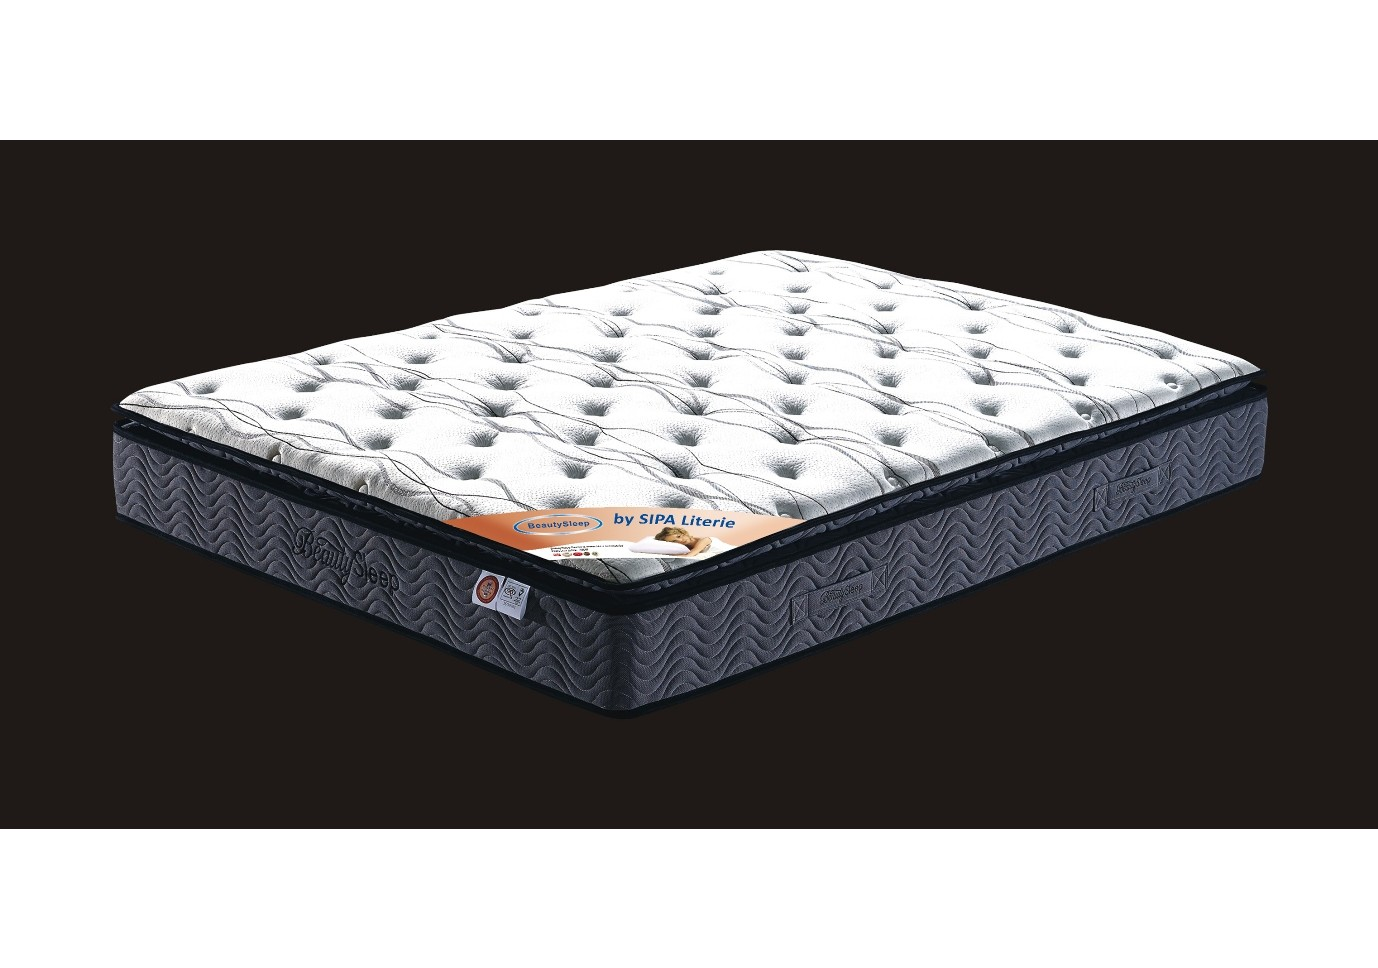 matelas ressort 160x200 matelas ressorts x cm softy prix promo uac with matelas ressort 160x200. Black Bedroom Furniture Sets. Home Design Ideas